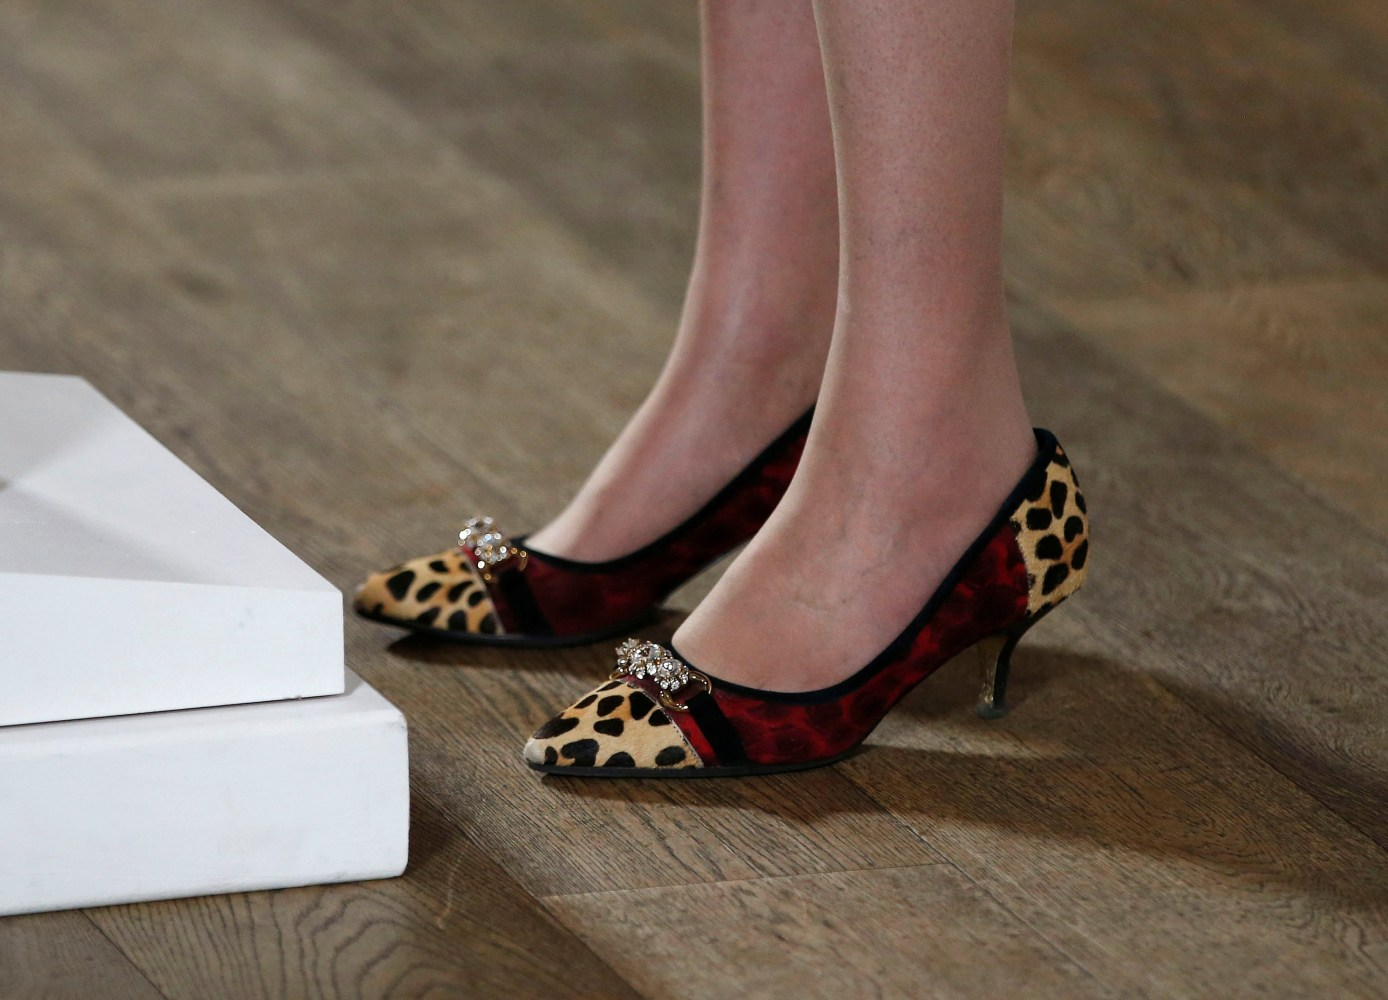 Theresa May's shoes are pictured as she speaks during an event at the ...